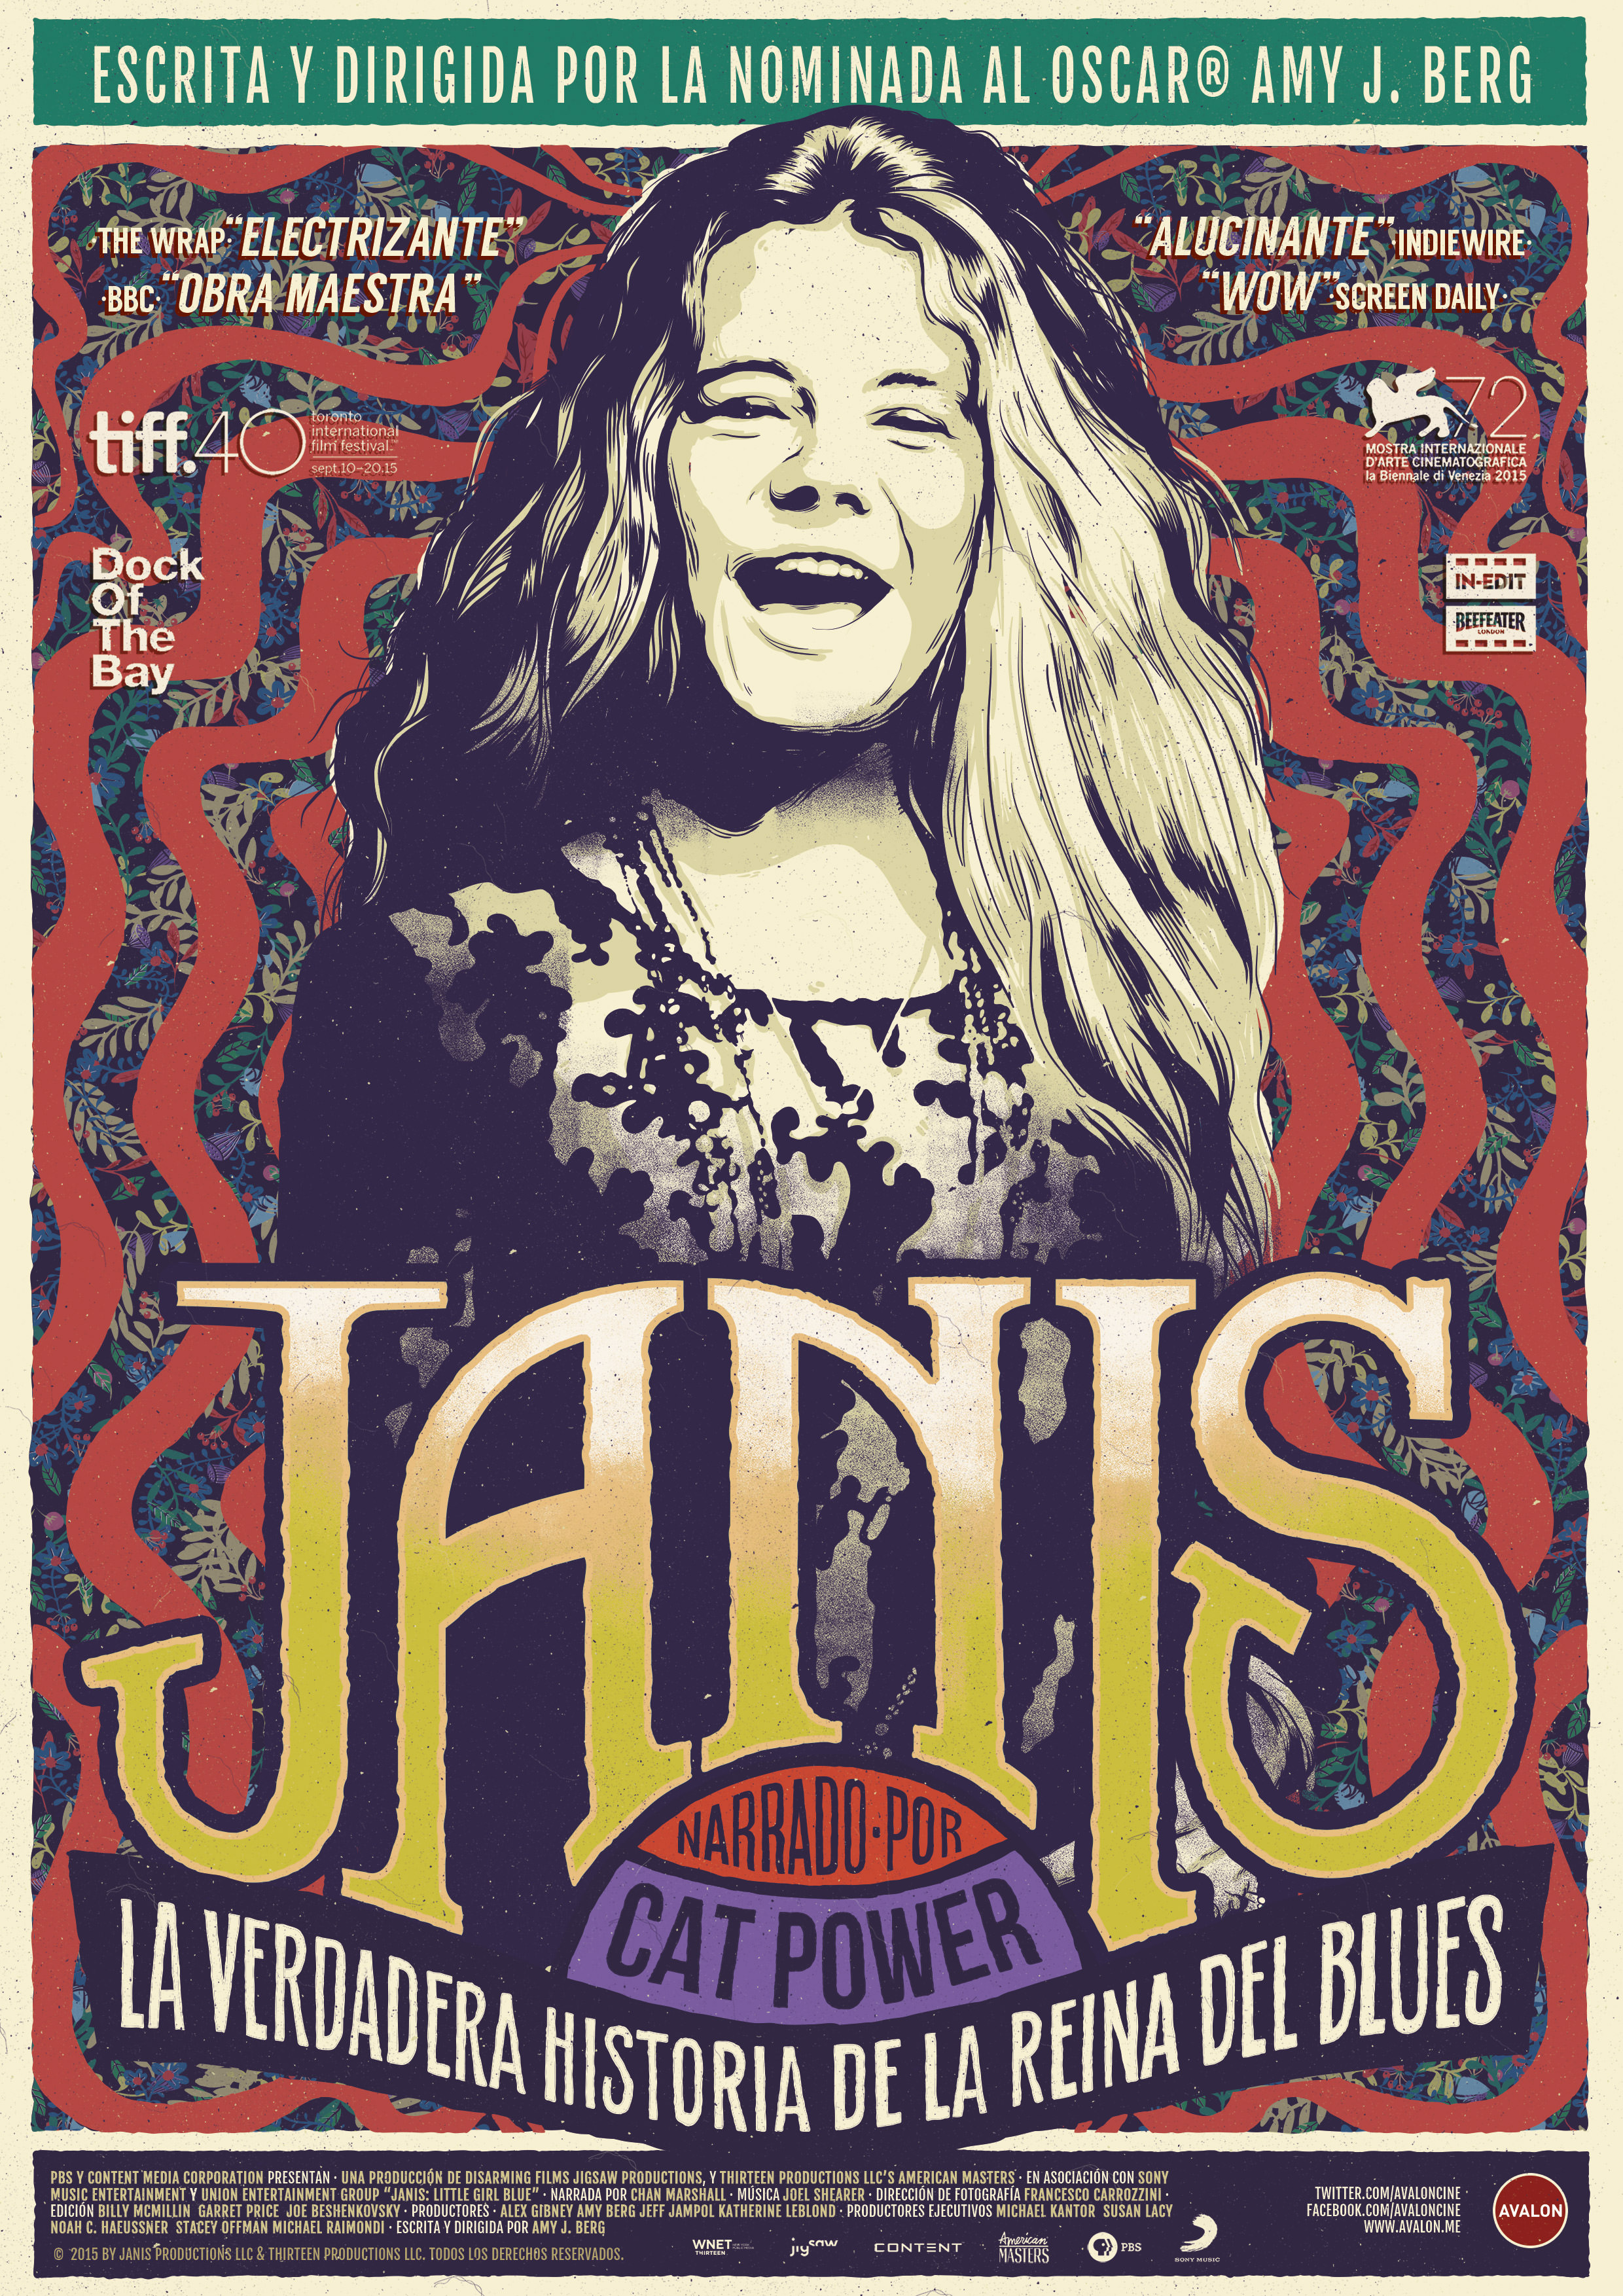 Janis(A4)